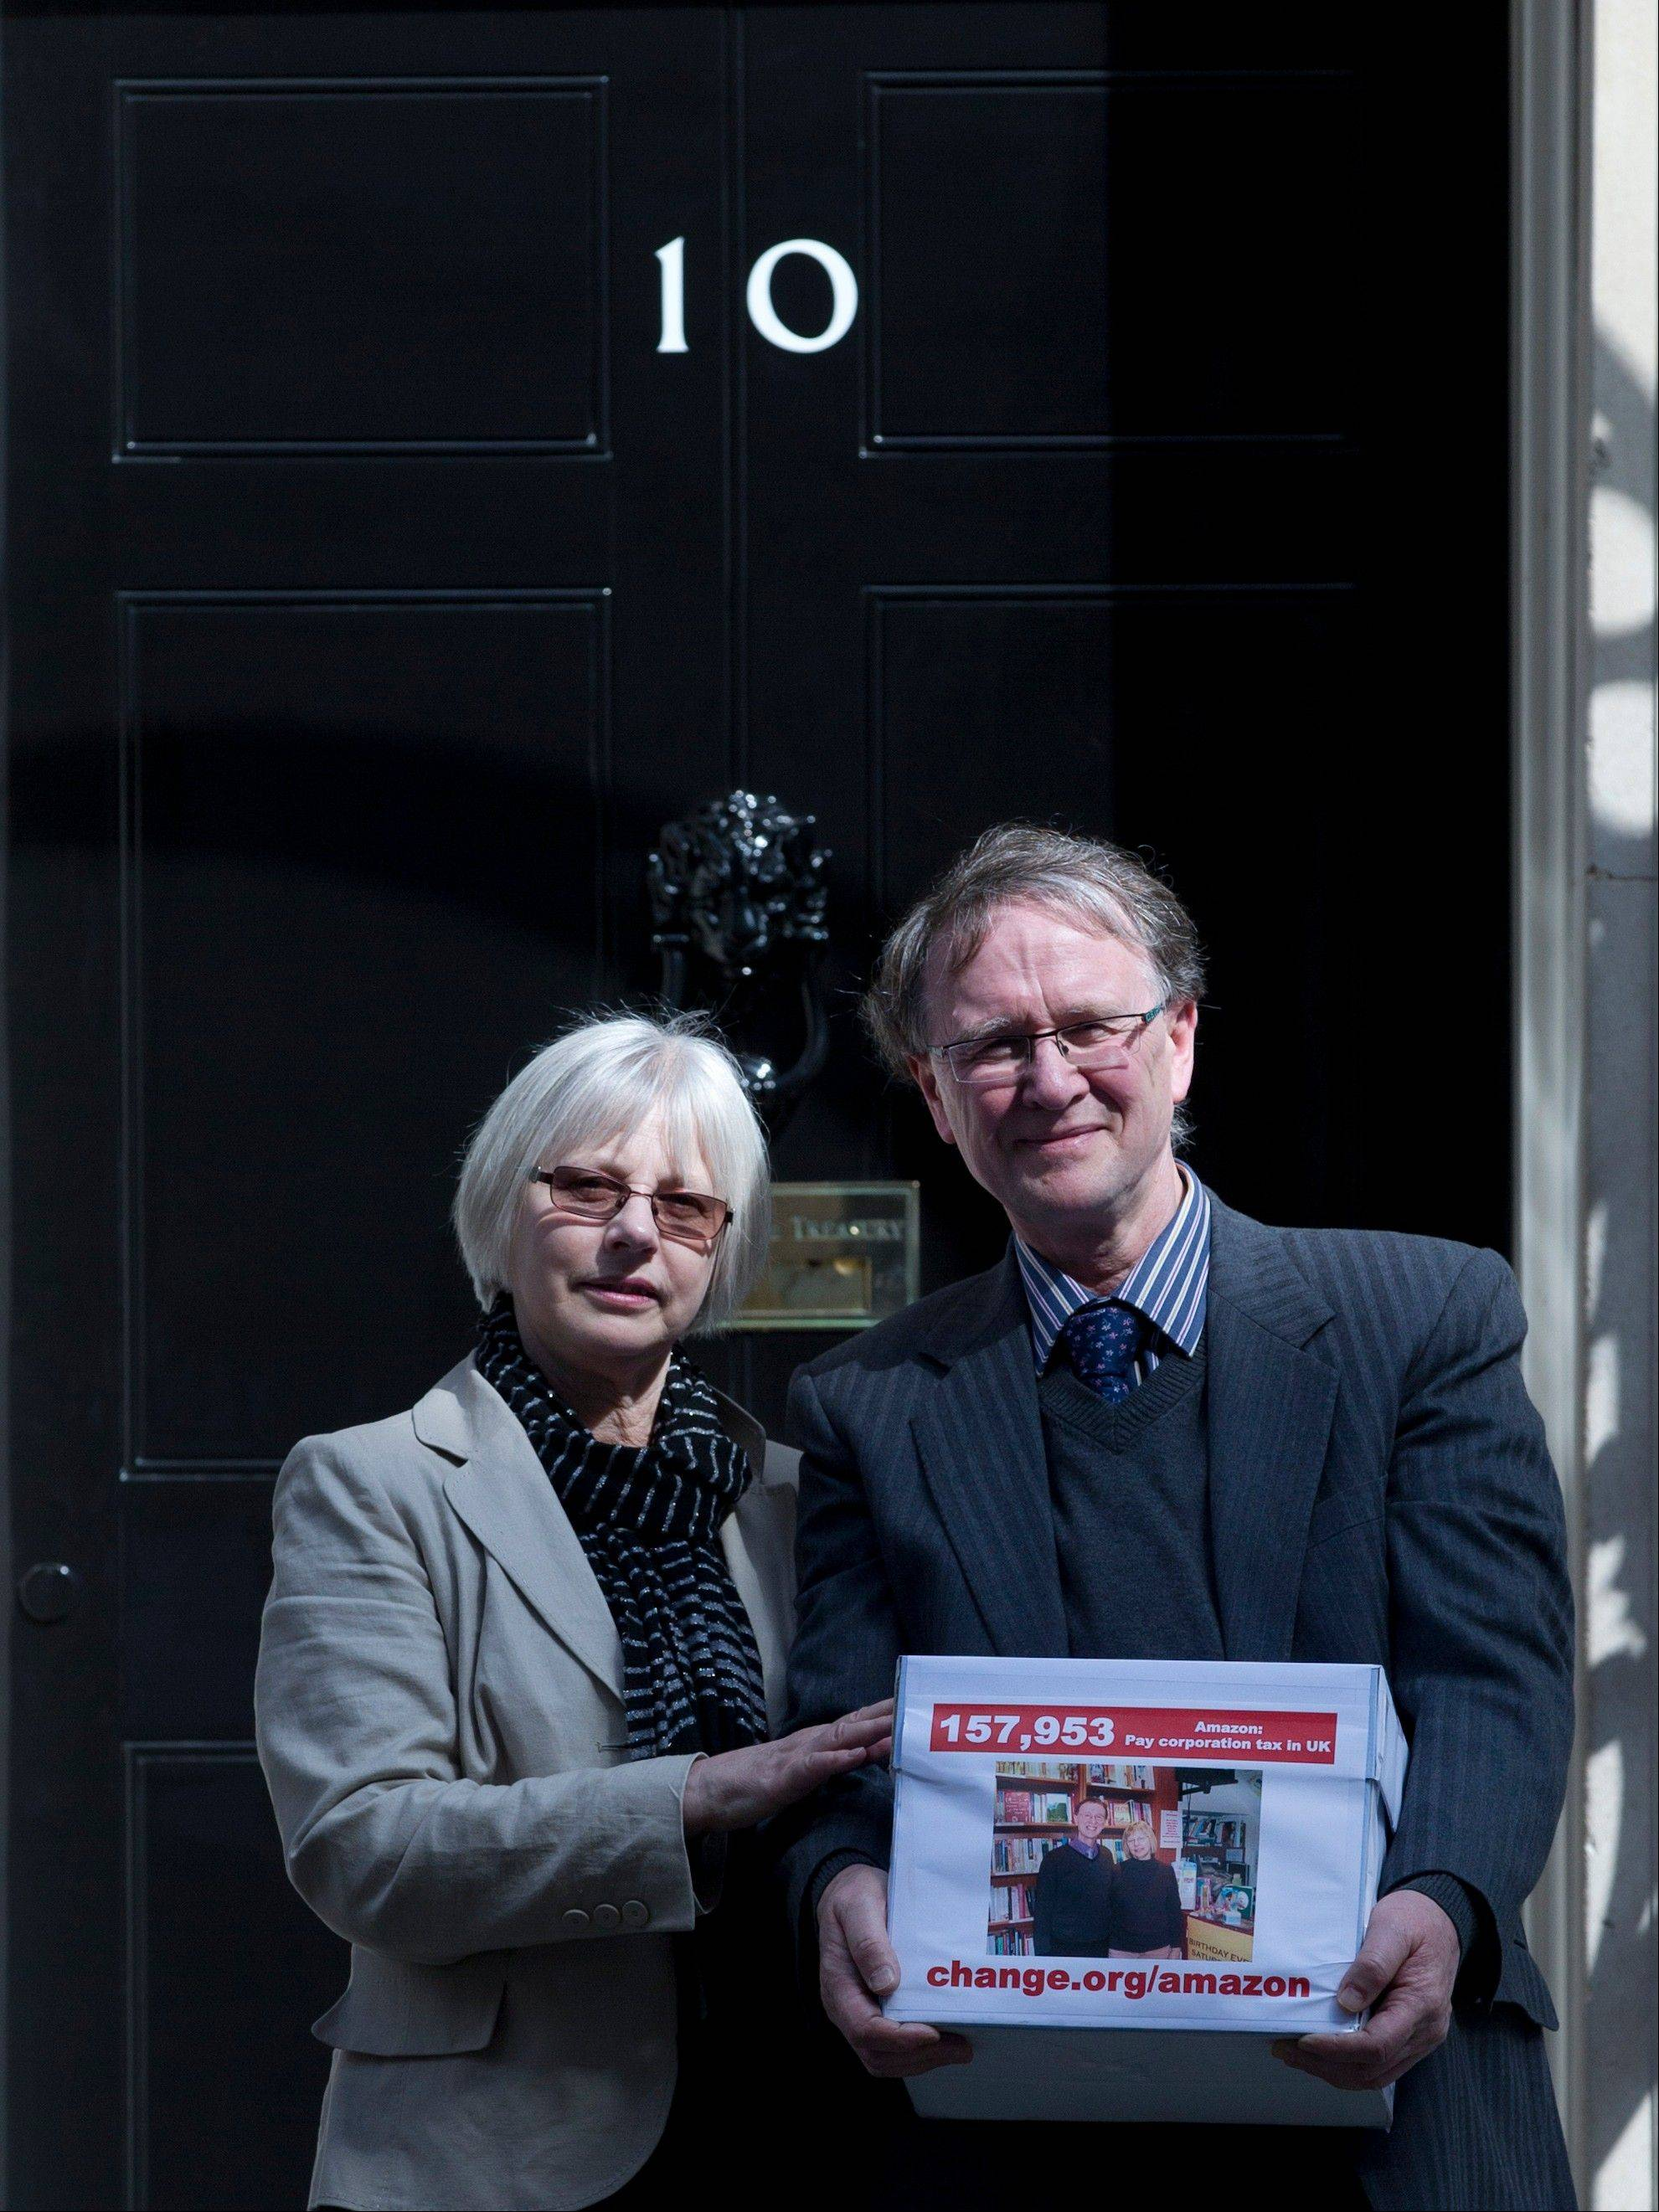 Independent bookshop owners Frances Smith and her husband, Keith, present a petition Wednesday to 10 Downing Street in London, calling for Internet shopping giant Amazon to pay British corporation tax. Internet shopping and how and where to tax is provoking lawmakers across the globe. In the United States tax-free shopping on the Internet could be in jeopardy under a bill making its way through the Senate. The bill would empower states to require online retailers to collect state and local sales taxes for purchases made over the Internet.